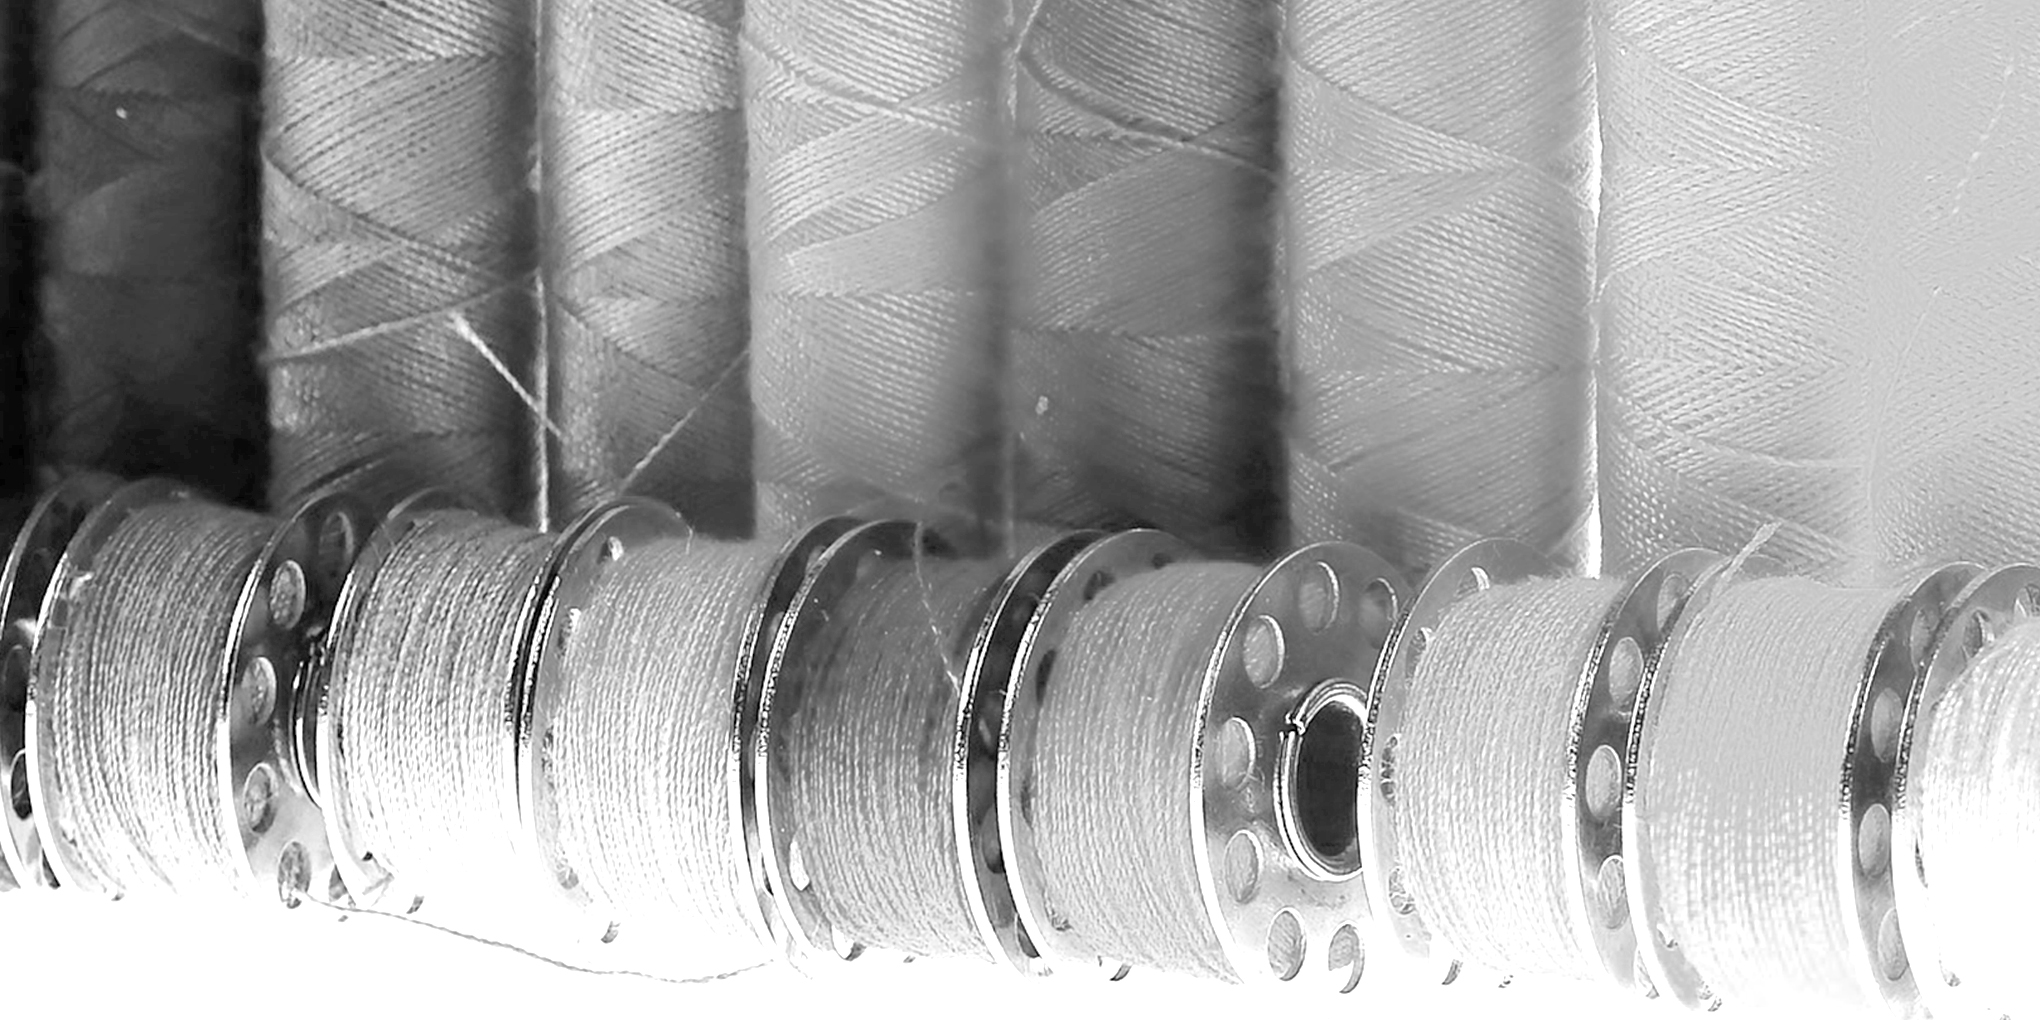 embroidery-which-bobbin-thread-for-embroidery